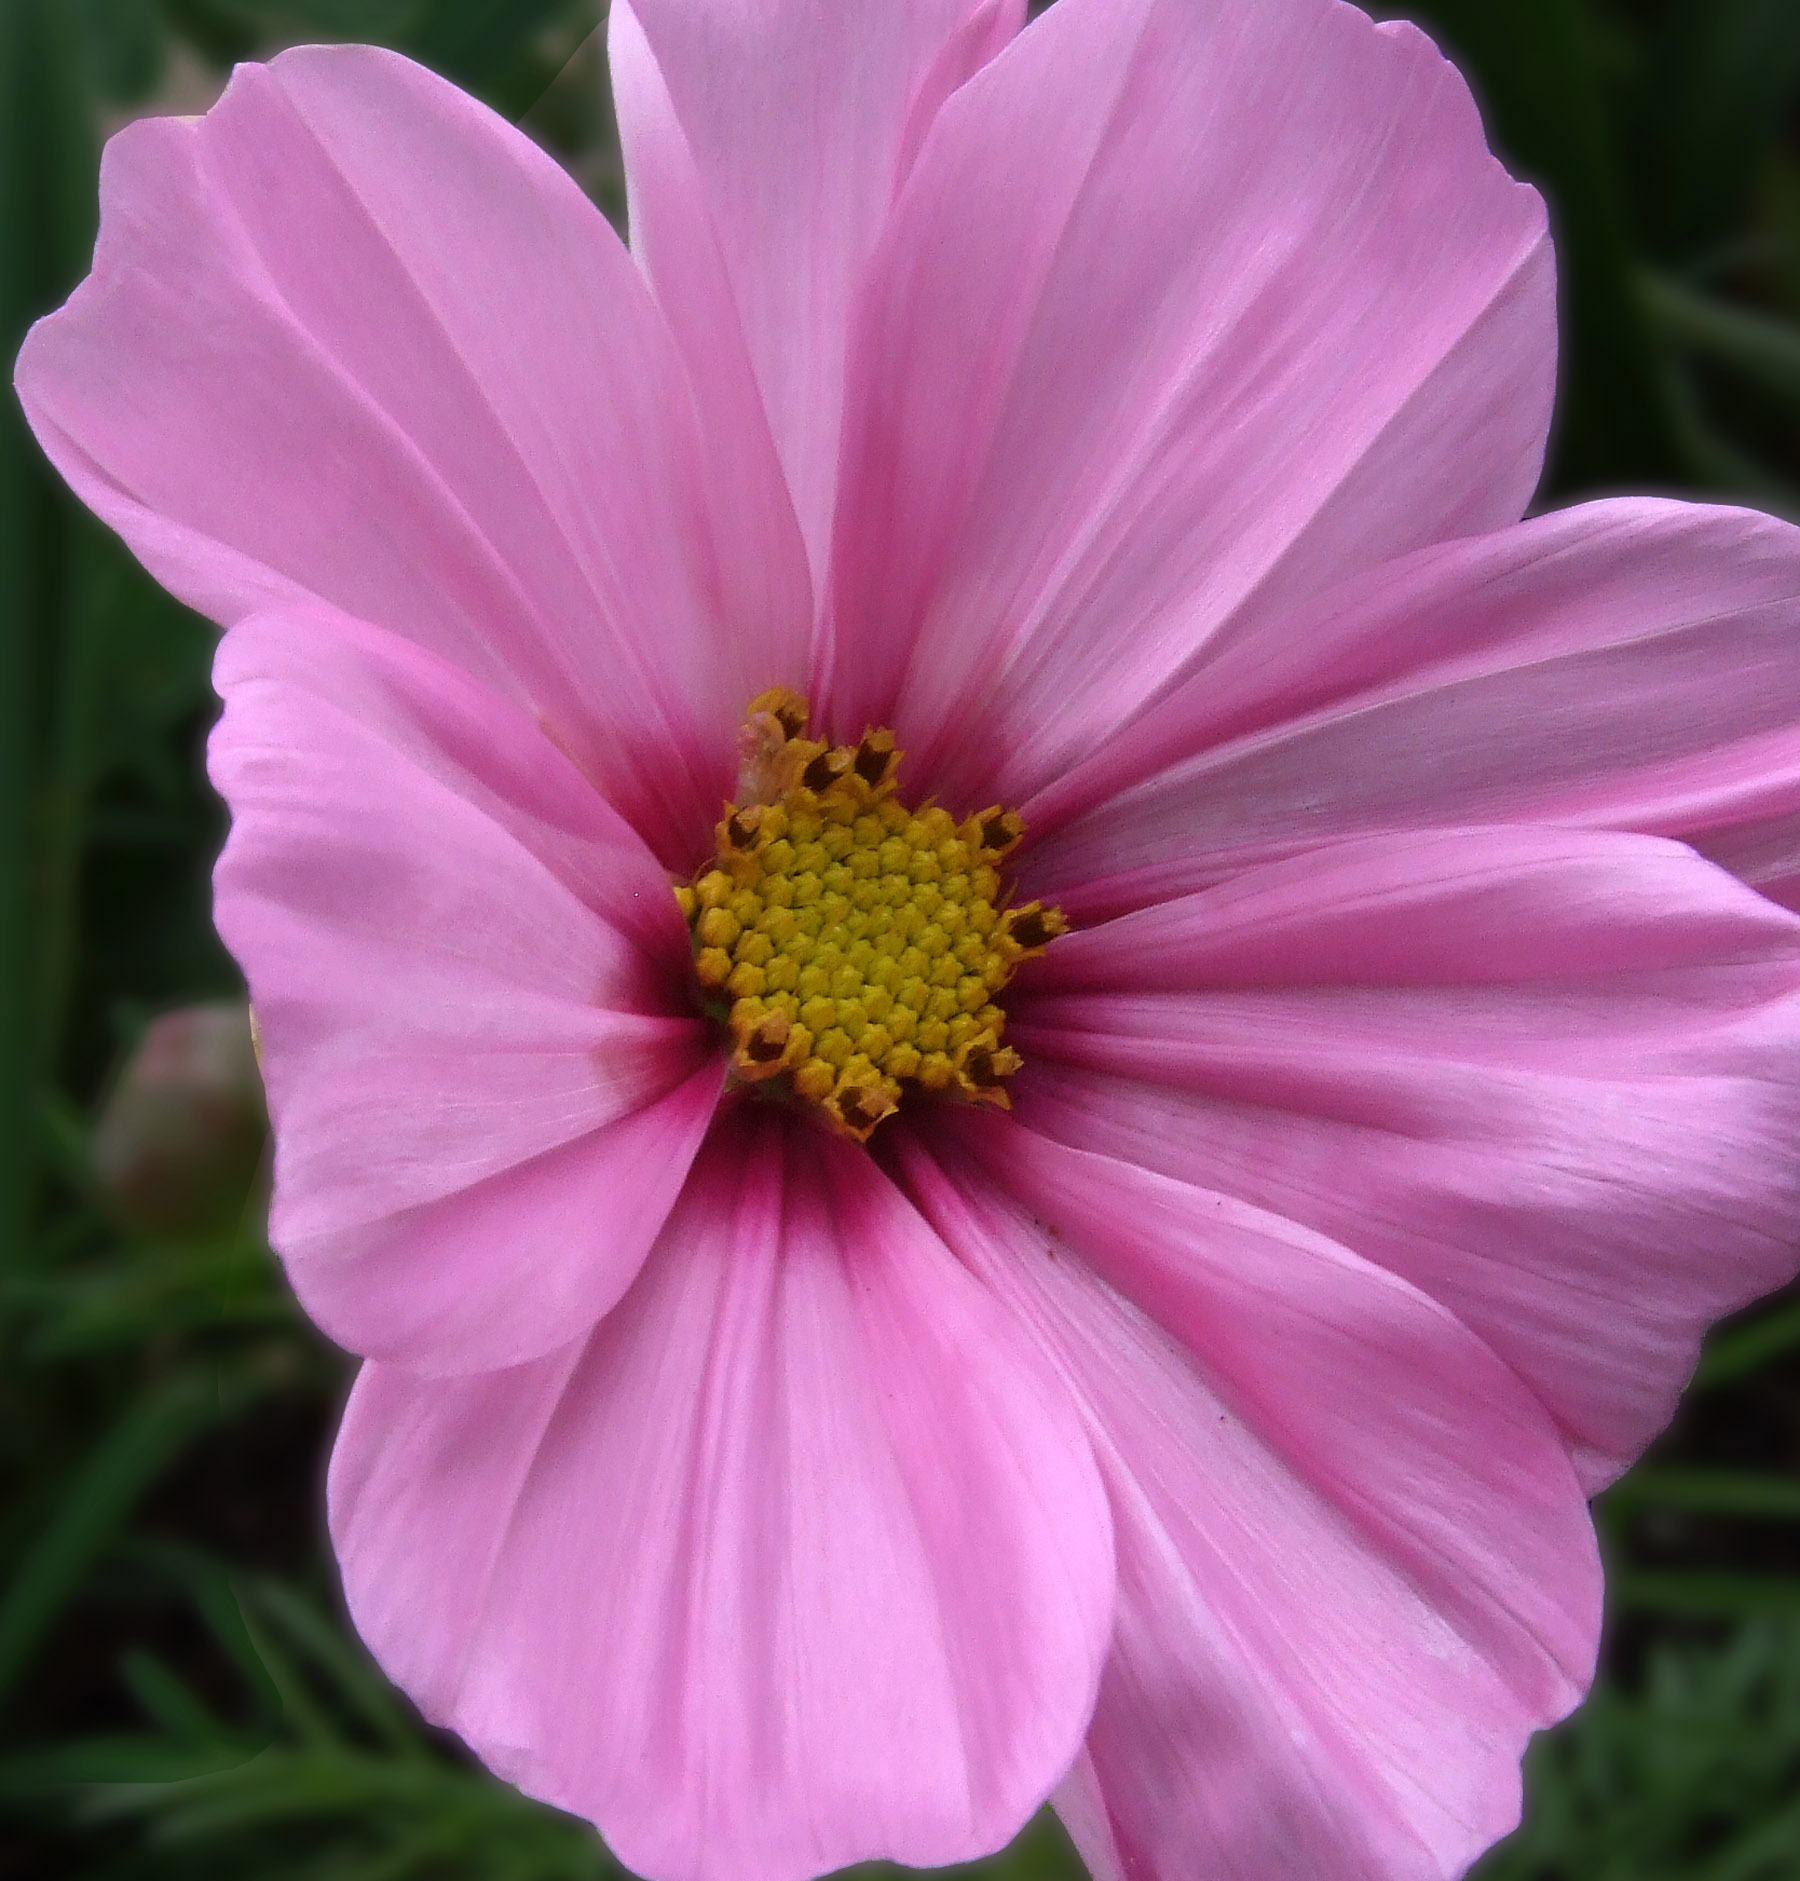 Pink yellow flower from fuji f31fd digital camera mightylinksfo Image collections